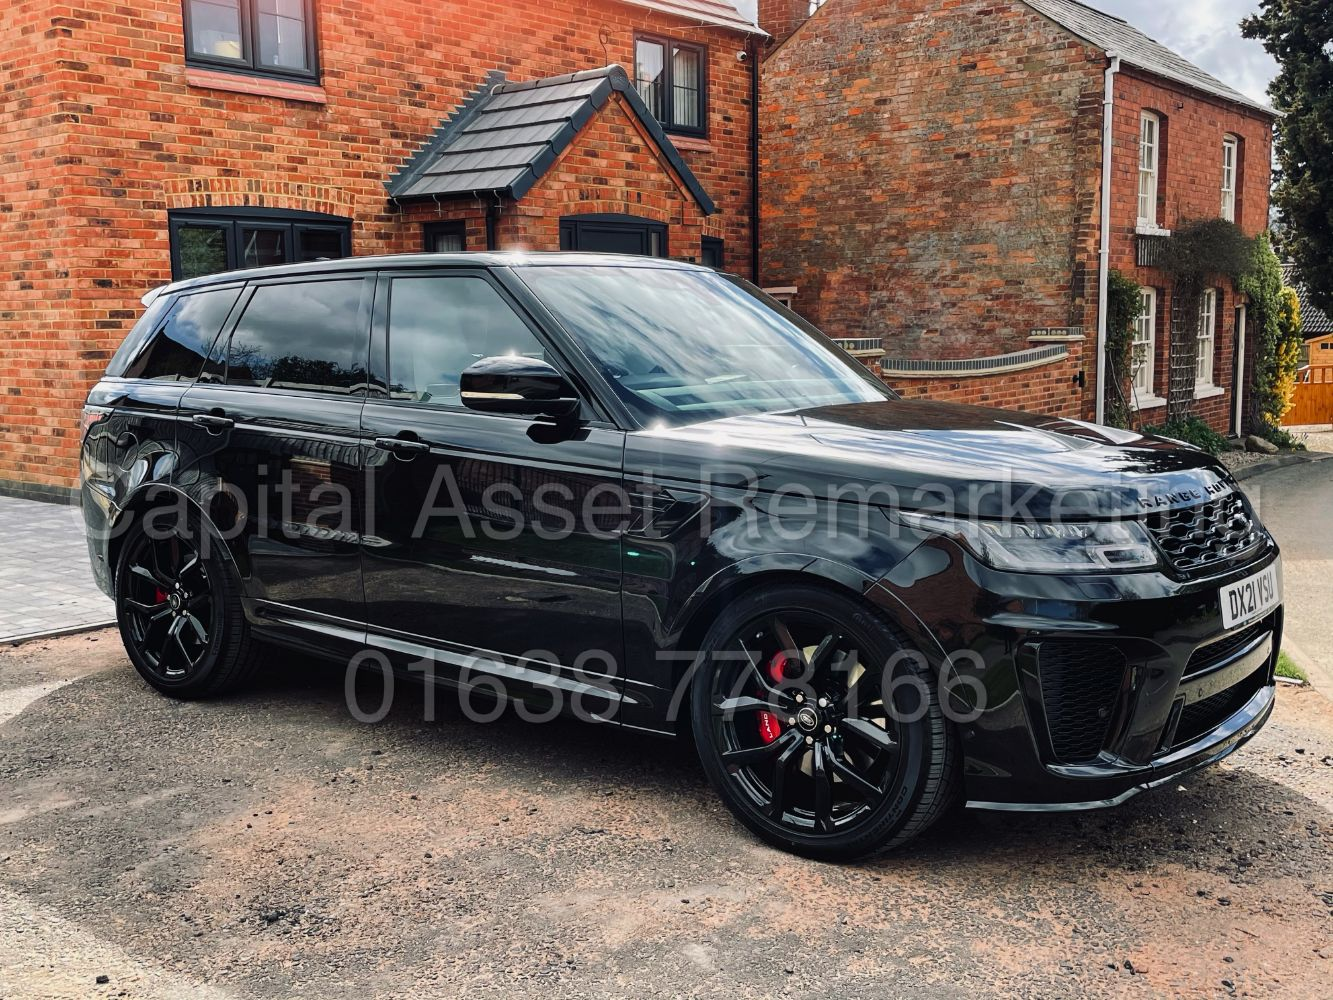 2021 Range Rover Sport *SVR Edition* - 2020 Mercedes-Benz E300de *Diesel Hybrid* AMG Estate - Rolex Watches + Many More Cars & Commercials !!!